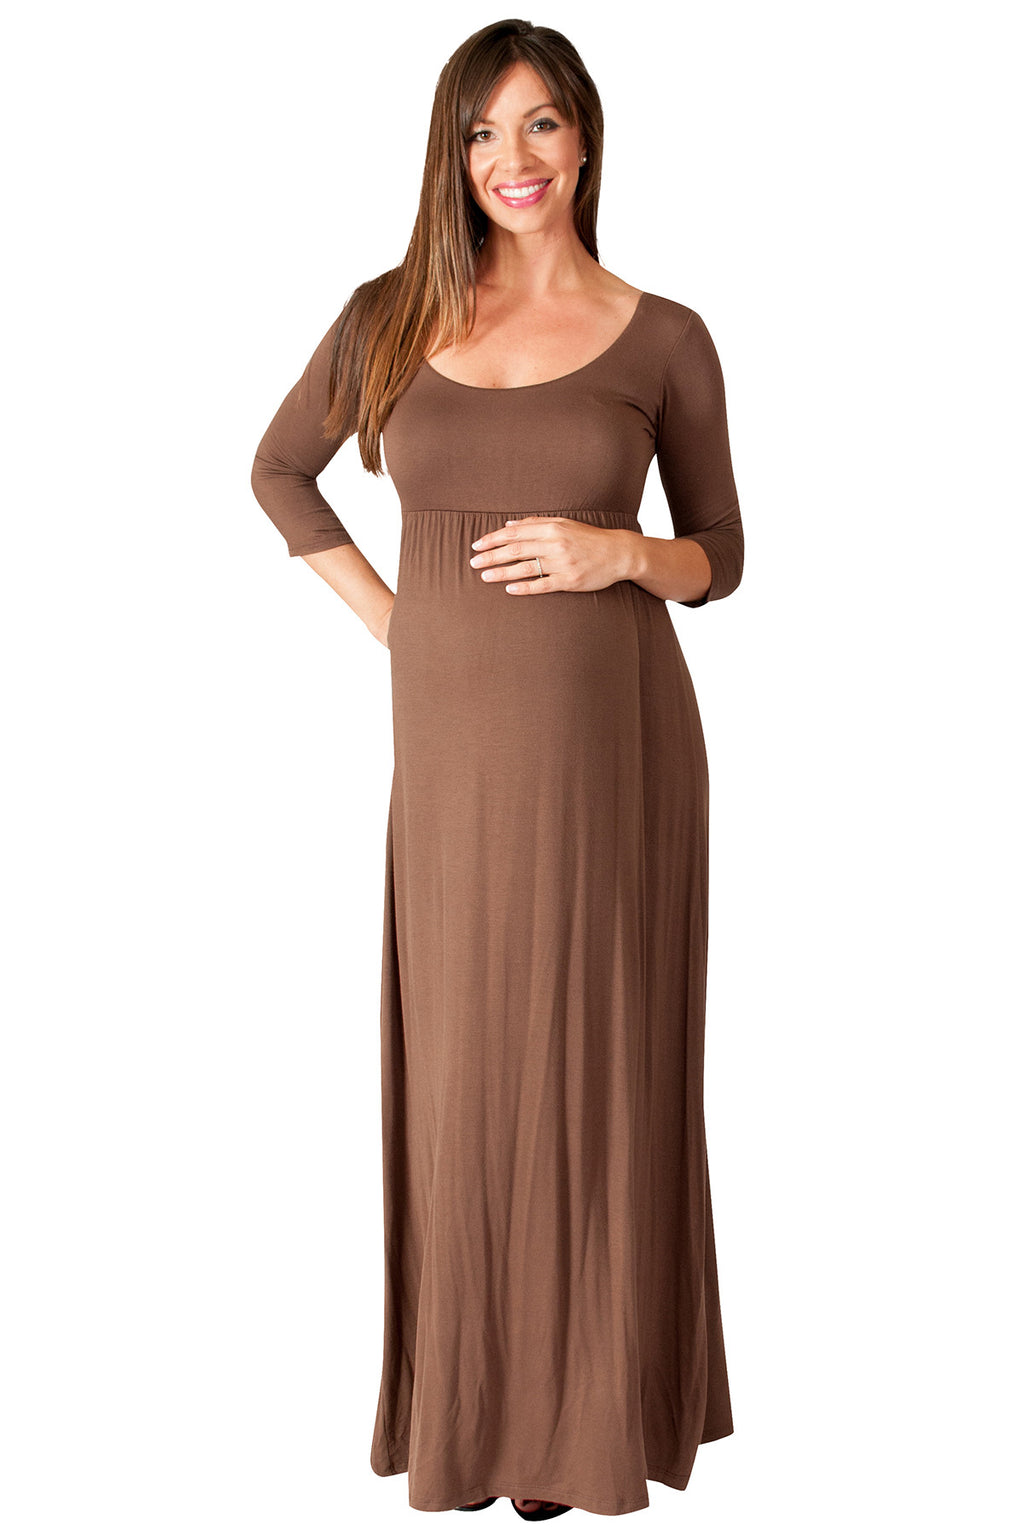 Solid Long Sleeve Maternity Maxi Dress - Mommylicious